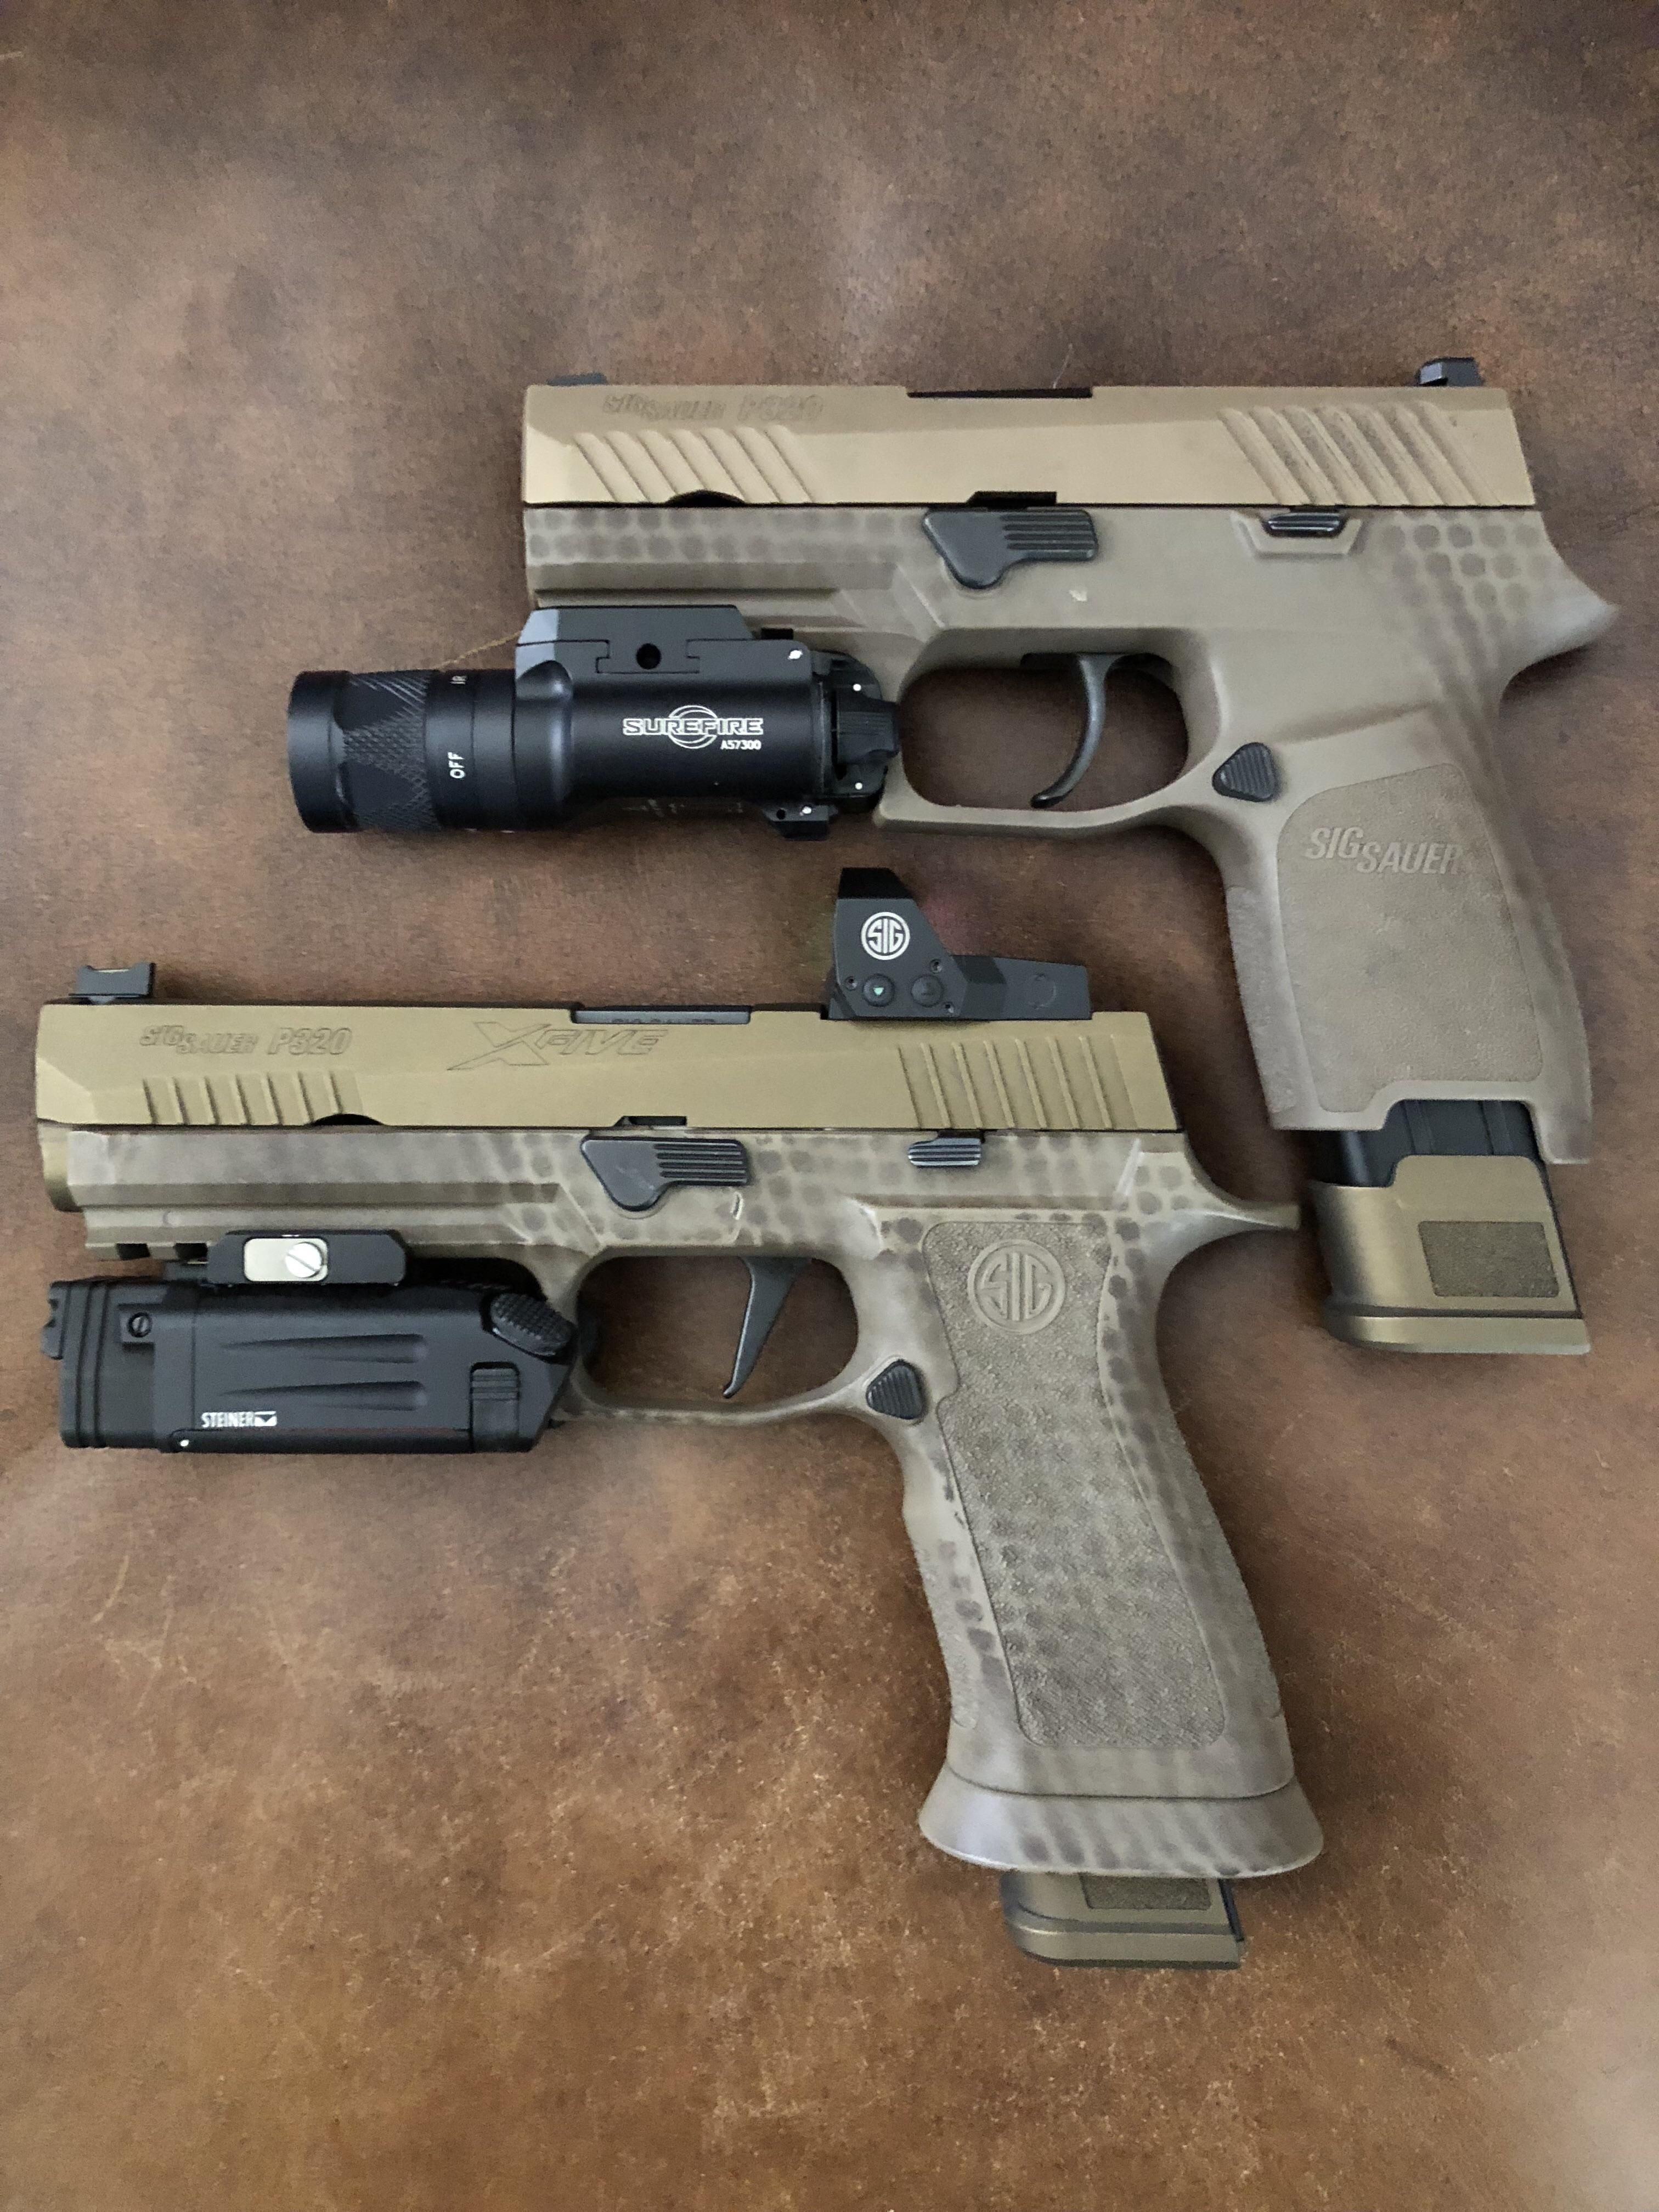 SIG P320 X5 And its backup  Tools of my professional